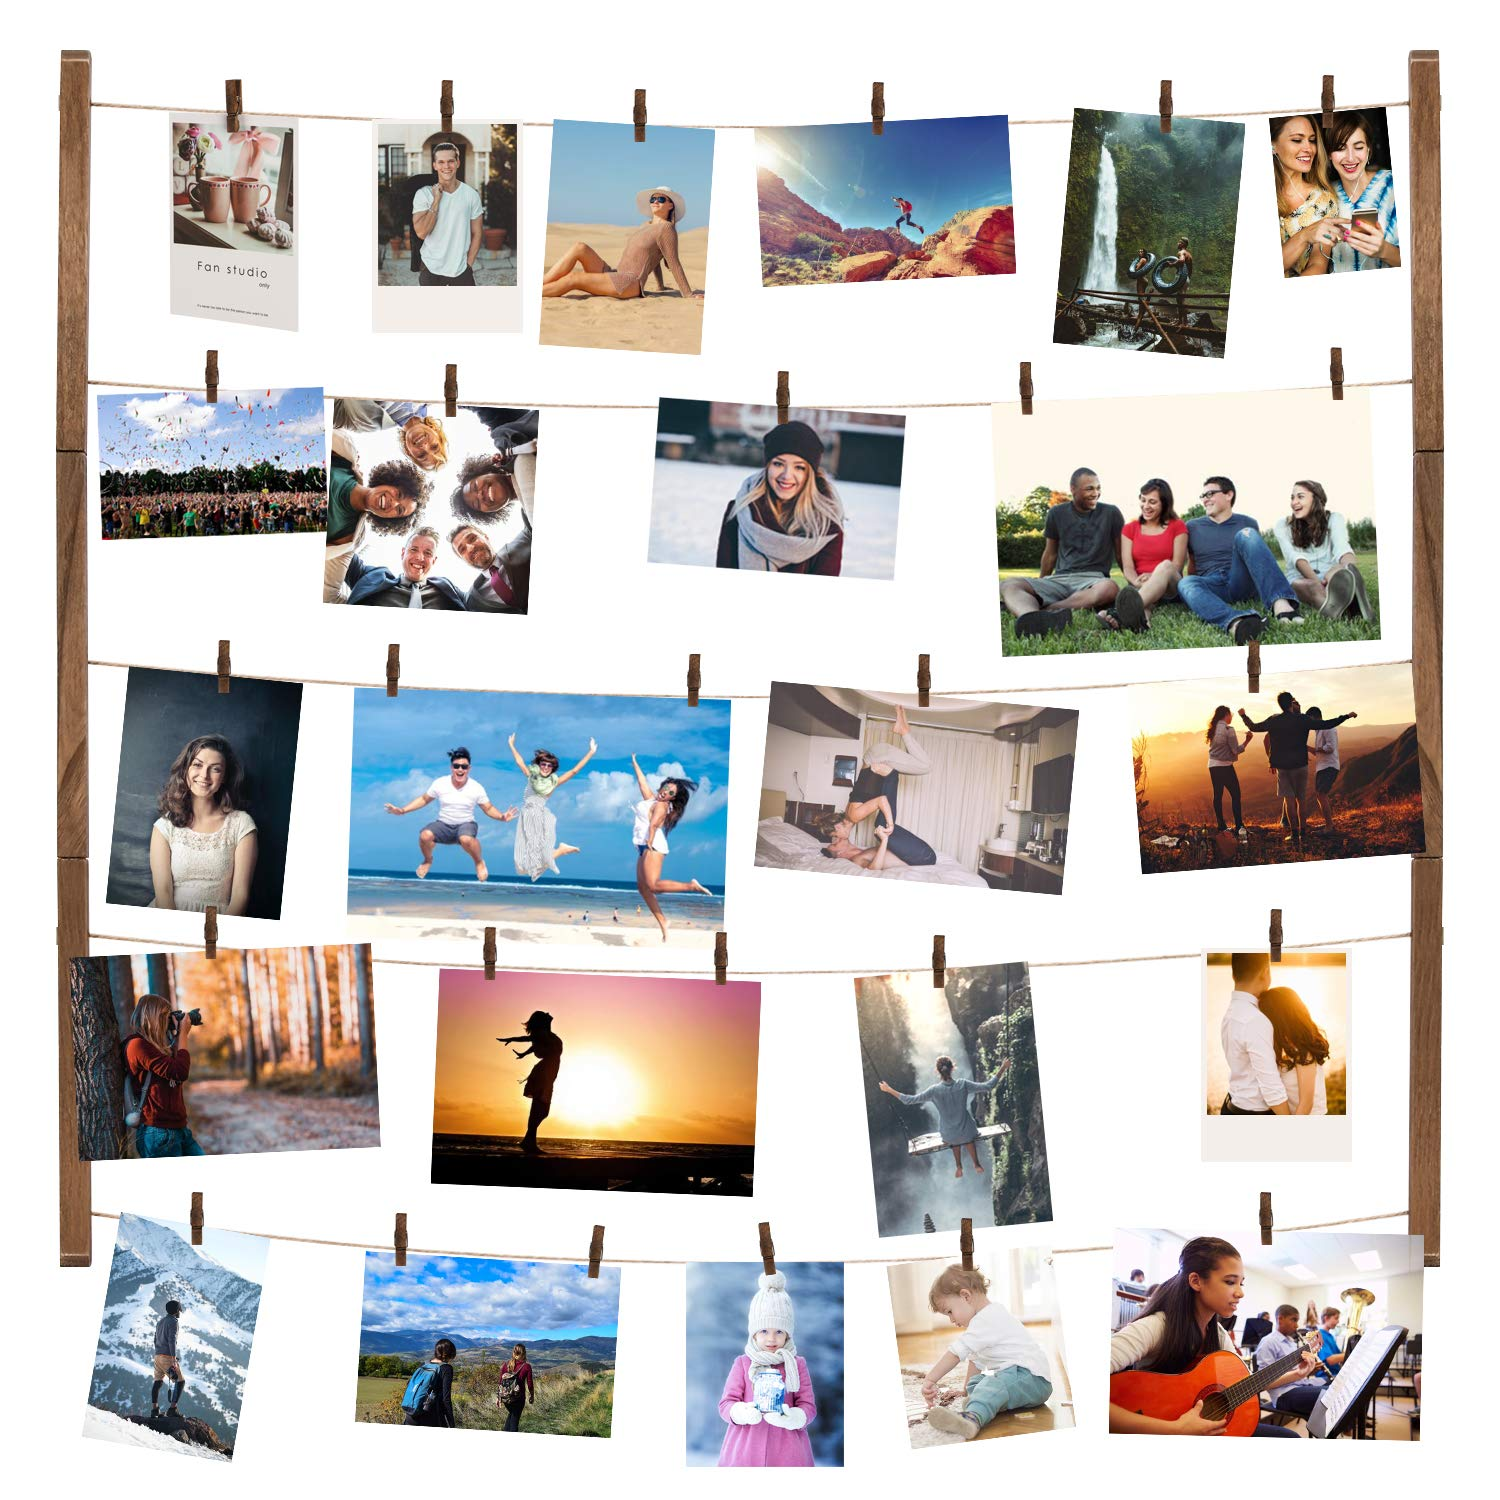 ONE WALL DIY Hanging Photo Display, 26x28 inch Rustic Wood Picture Frames Collage Set Includes Hanging Twine Cords, 50 Clothespins& Wall Mounts for Hanging Photos, Prints & Artwork